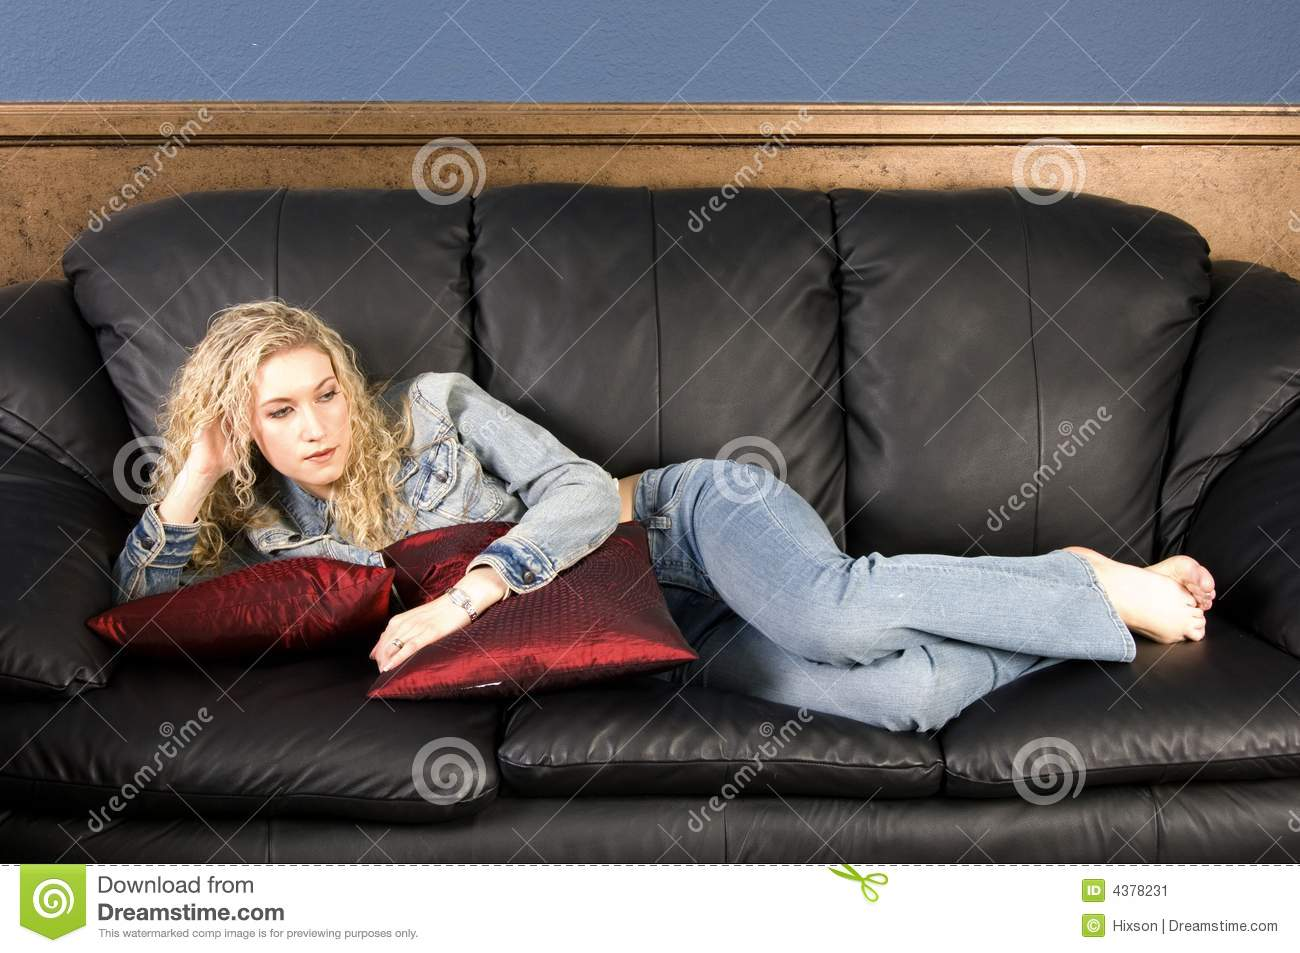 leather sofa couch ikea bed relaxing on stock image - image: 4378231